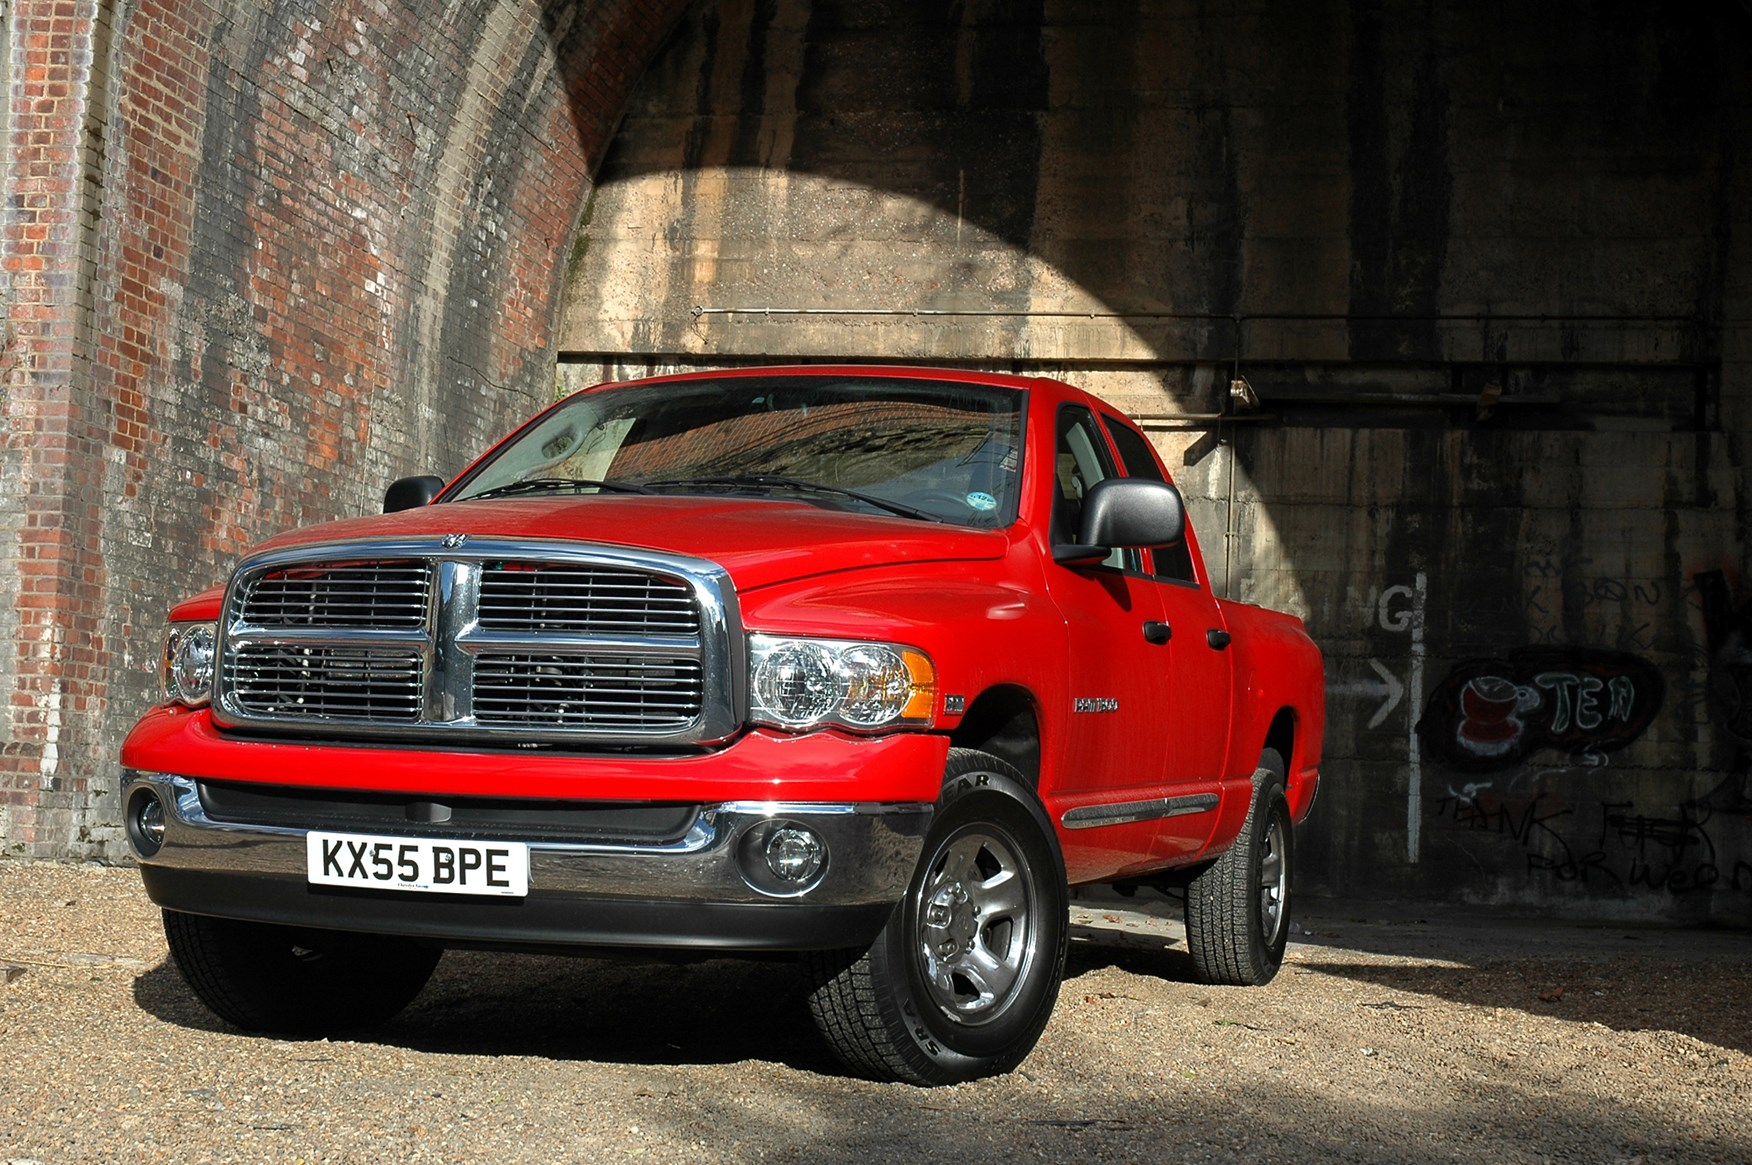 Dodge ram v8 laramie 4x4 2005 2007 features equipment and accessories parkers for Dodge ram exterior accessories